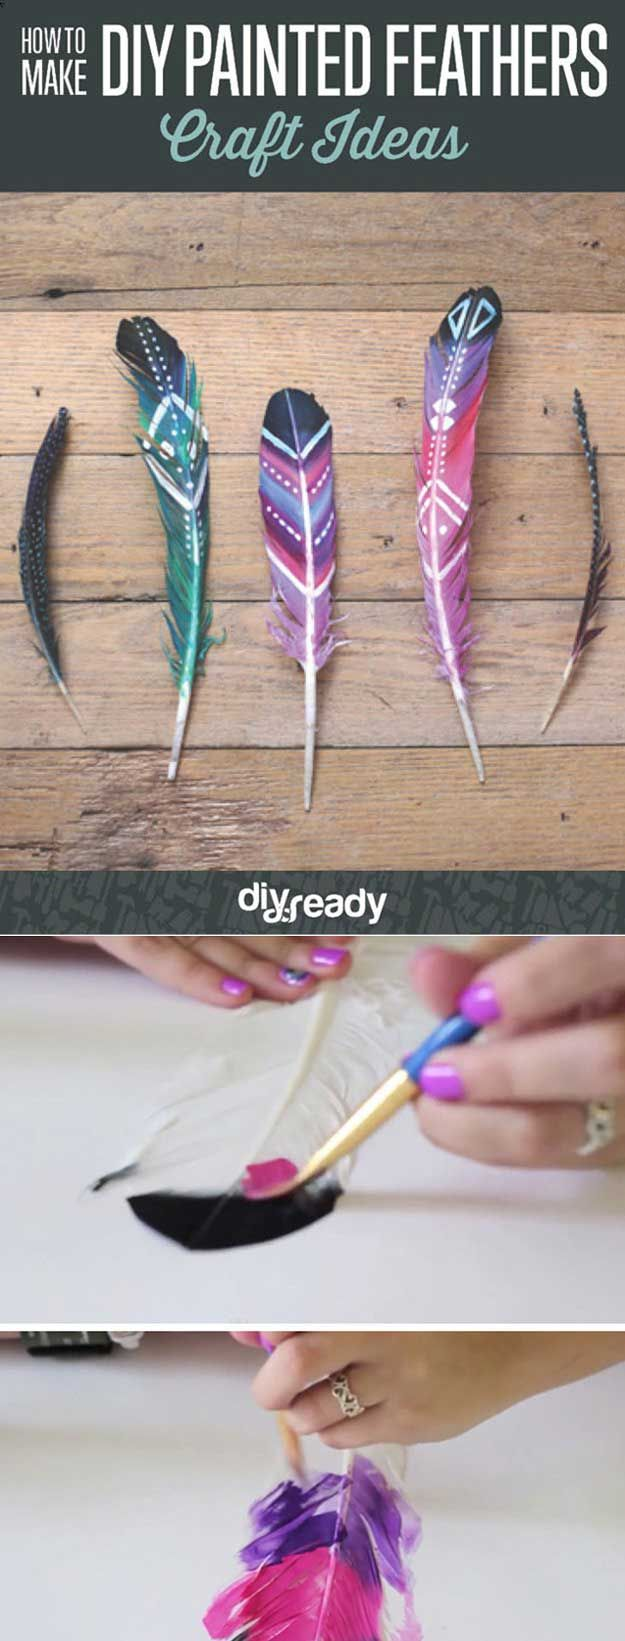 DIY Painted Feathers.  I LOVE this.  I would put this in a picture frame and glue the feathers on a white sheet of paper <3 great room decor!